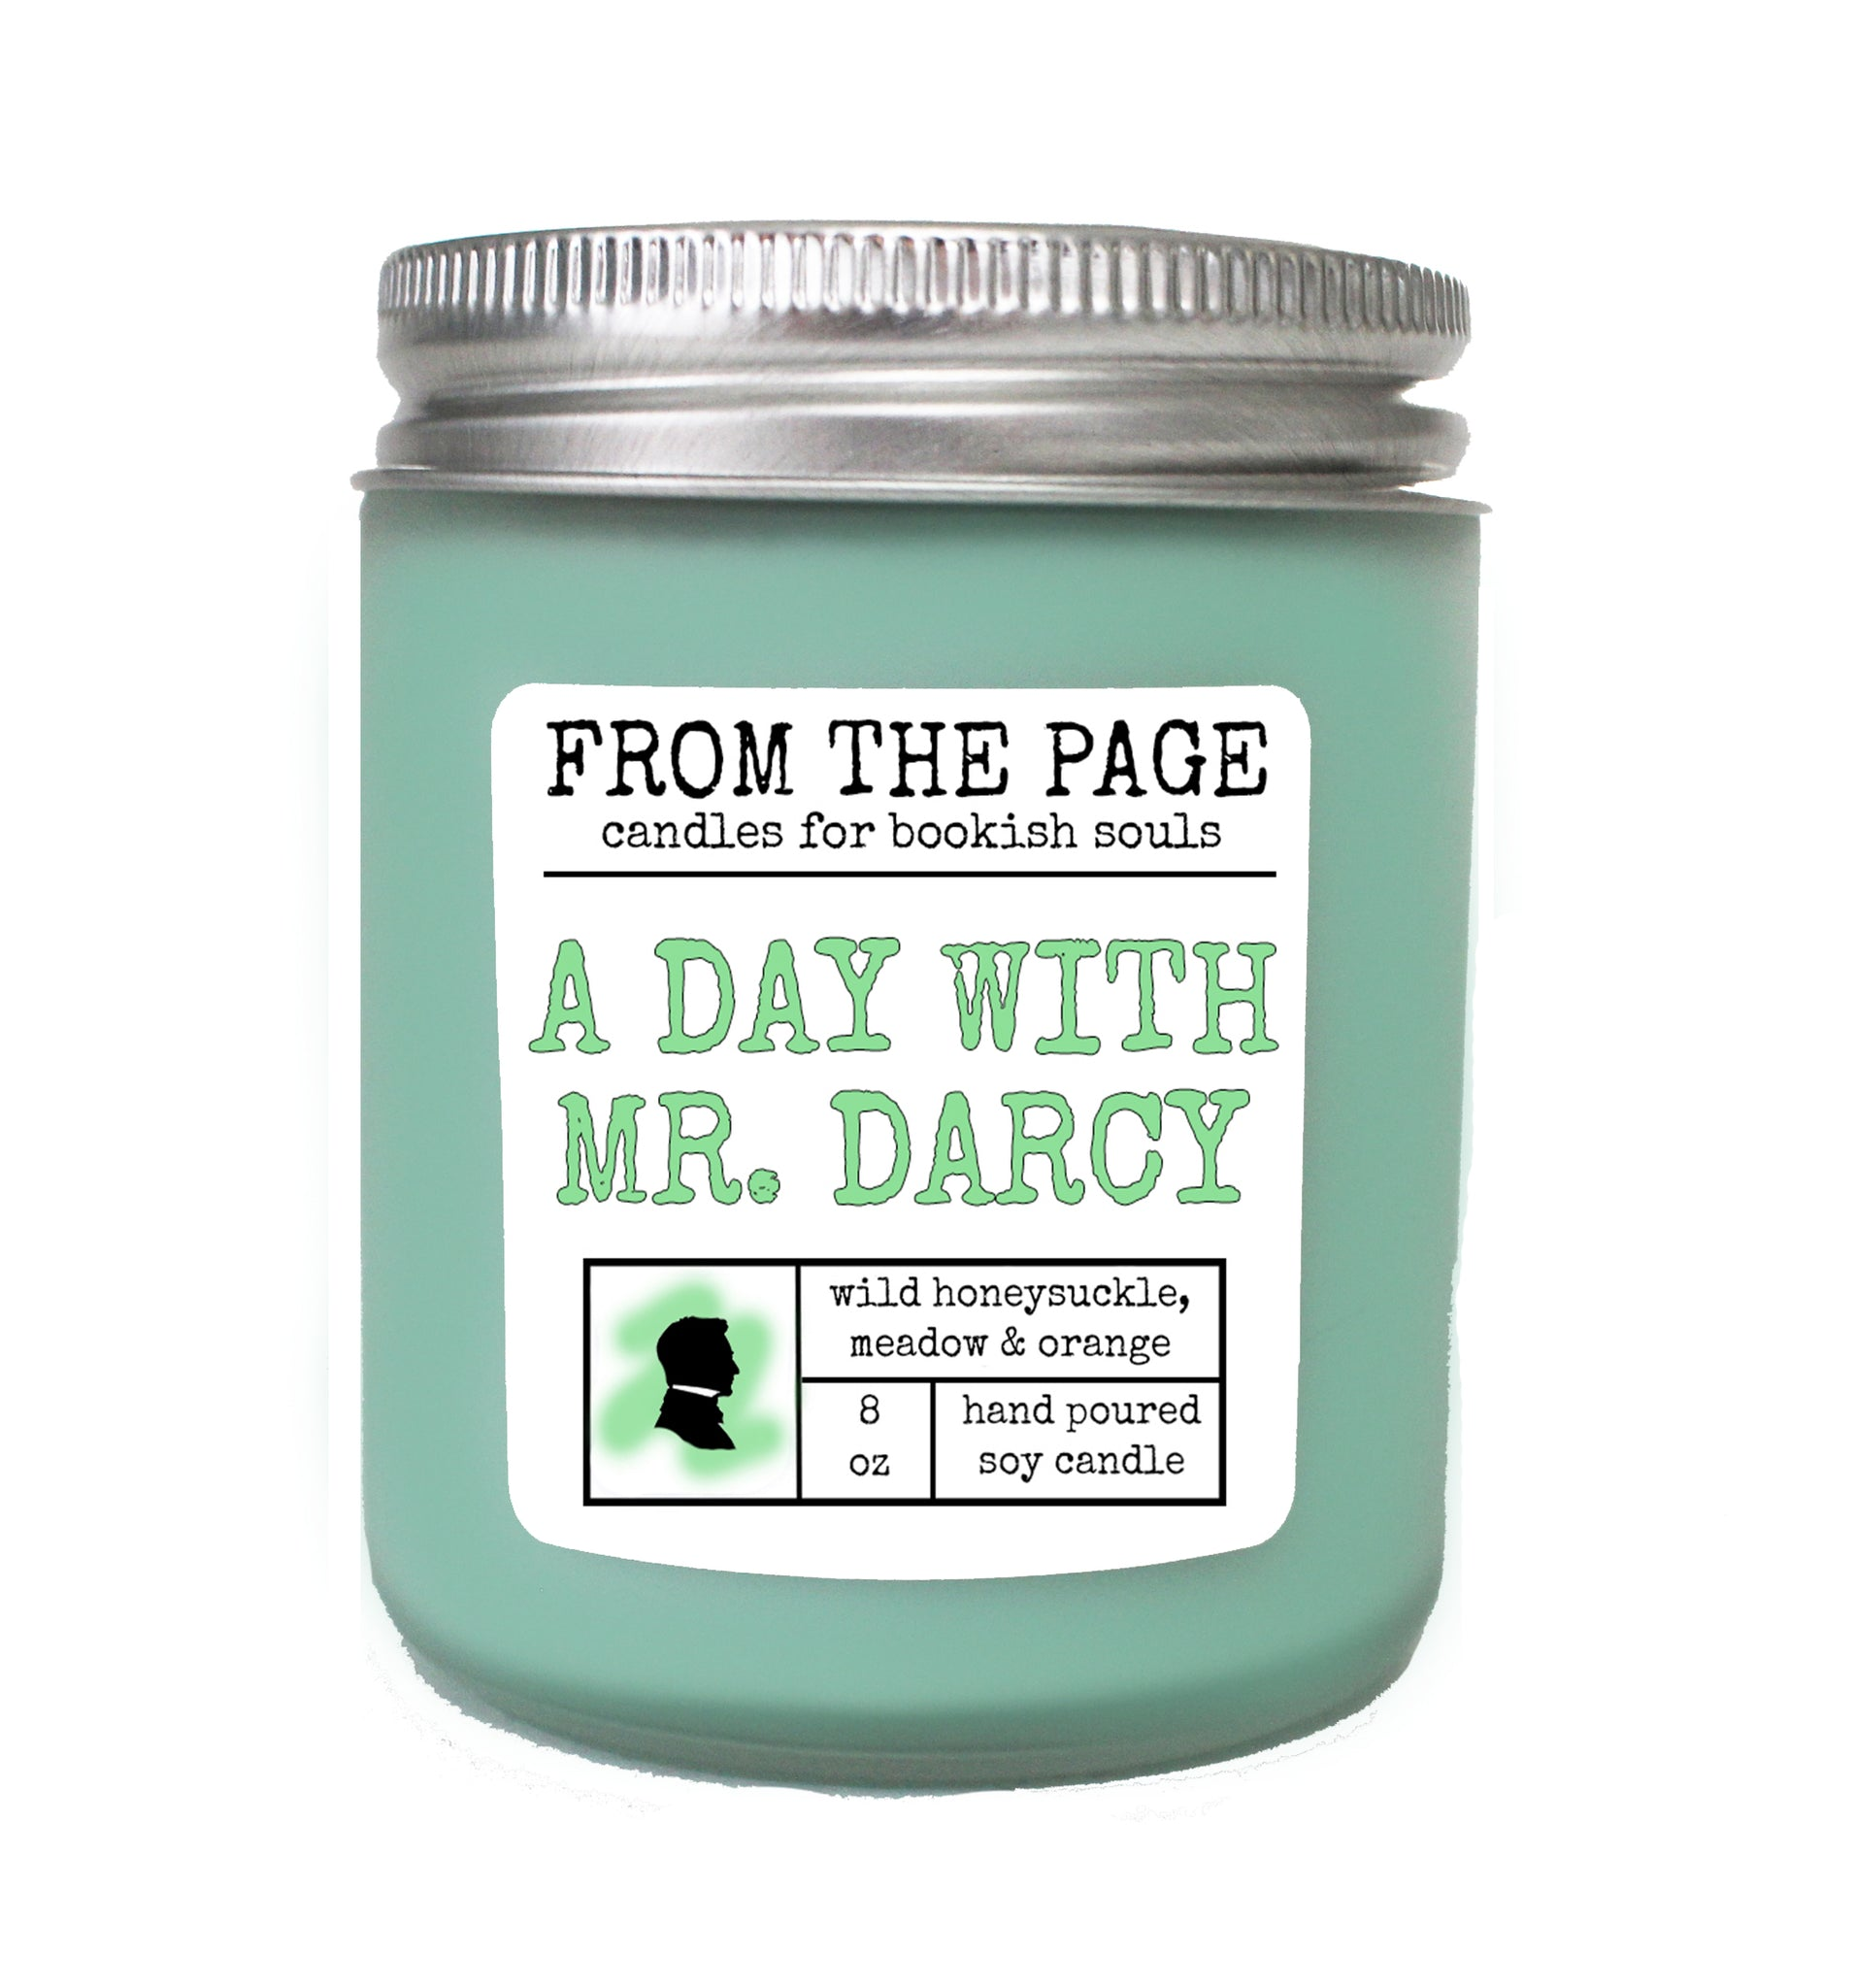 A Day With Mr. Darcy